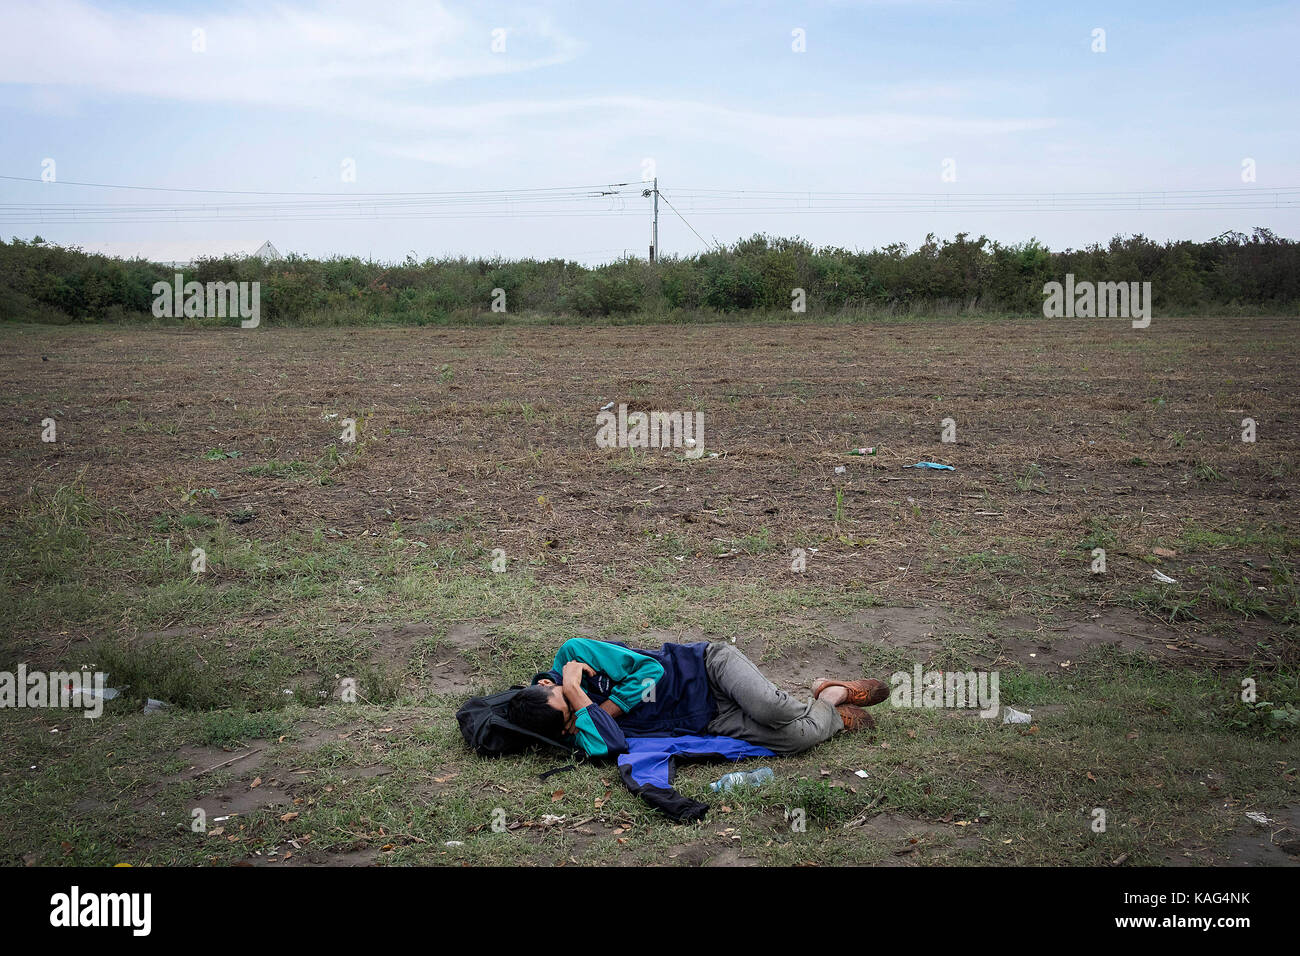 Europe, Serbia, Sid, September 2017 : After the great wave of migrants in recent years, the dramatic situation of - Stock Image